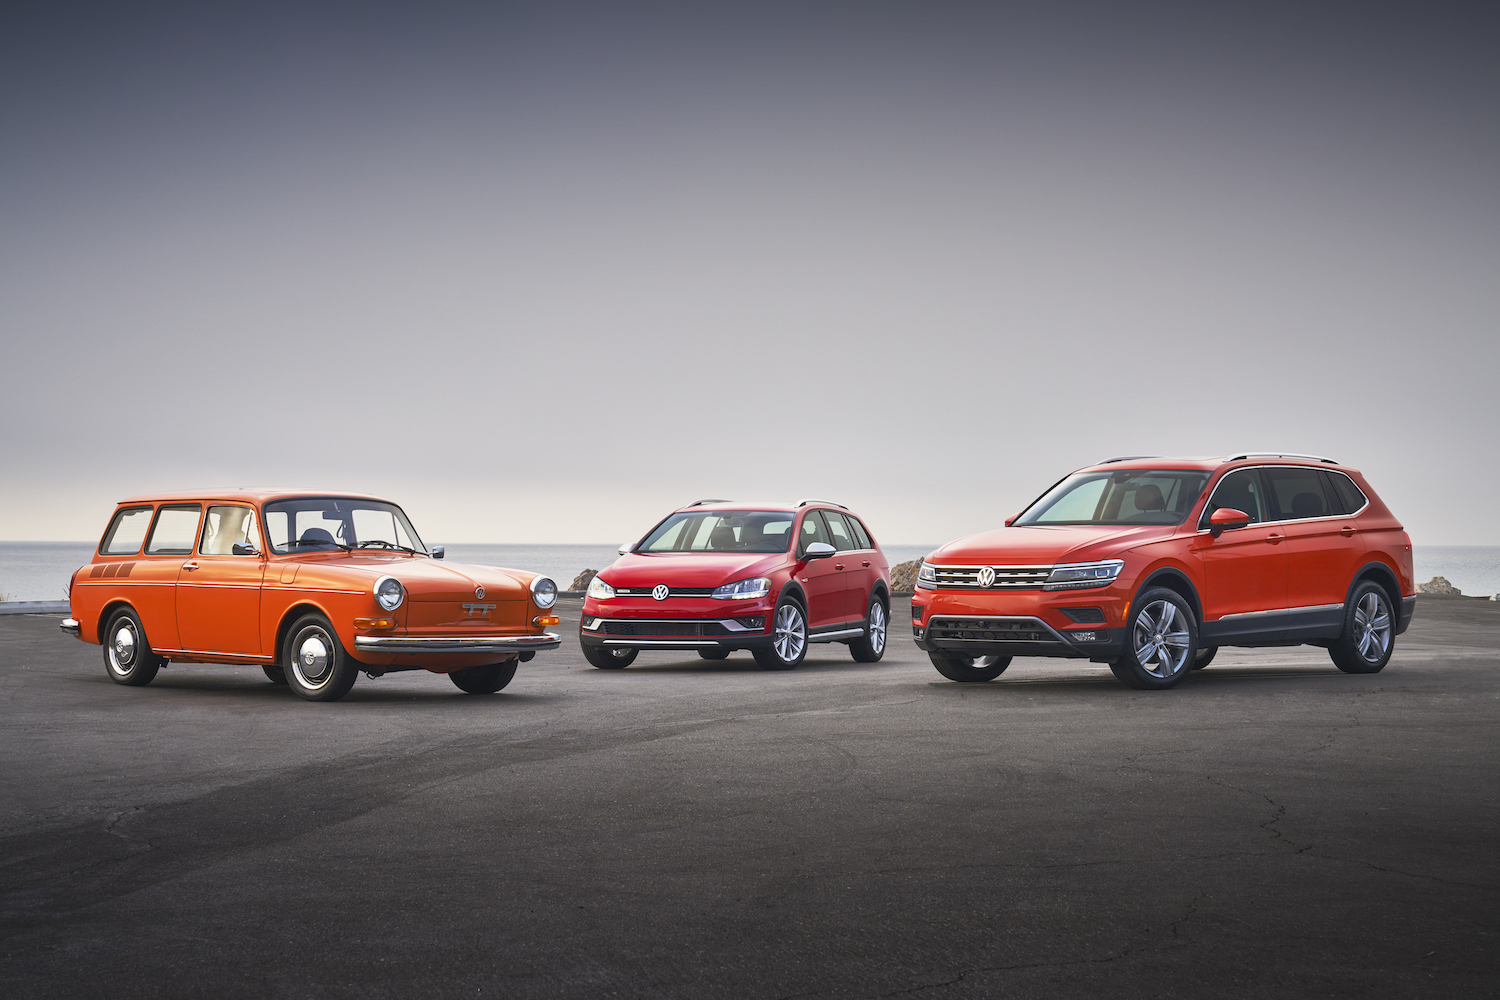 1973 Squareback Wagon with 2019 Golf Attack and 2019 Tiguan